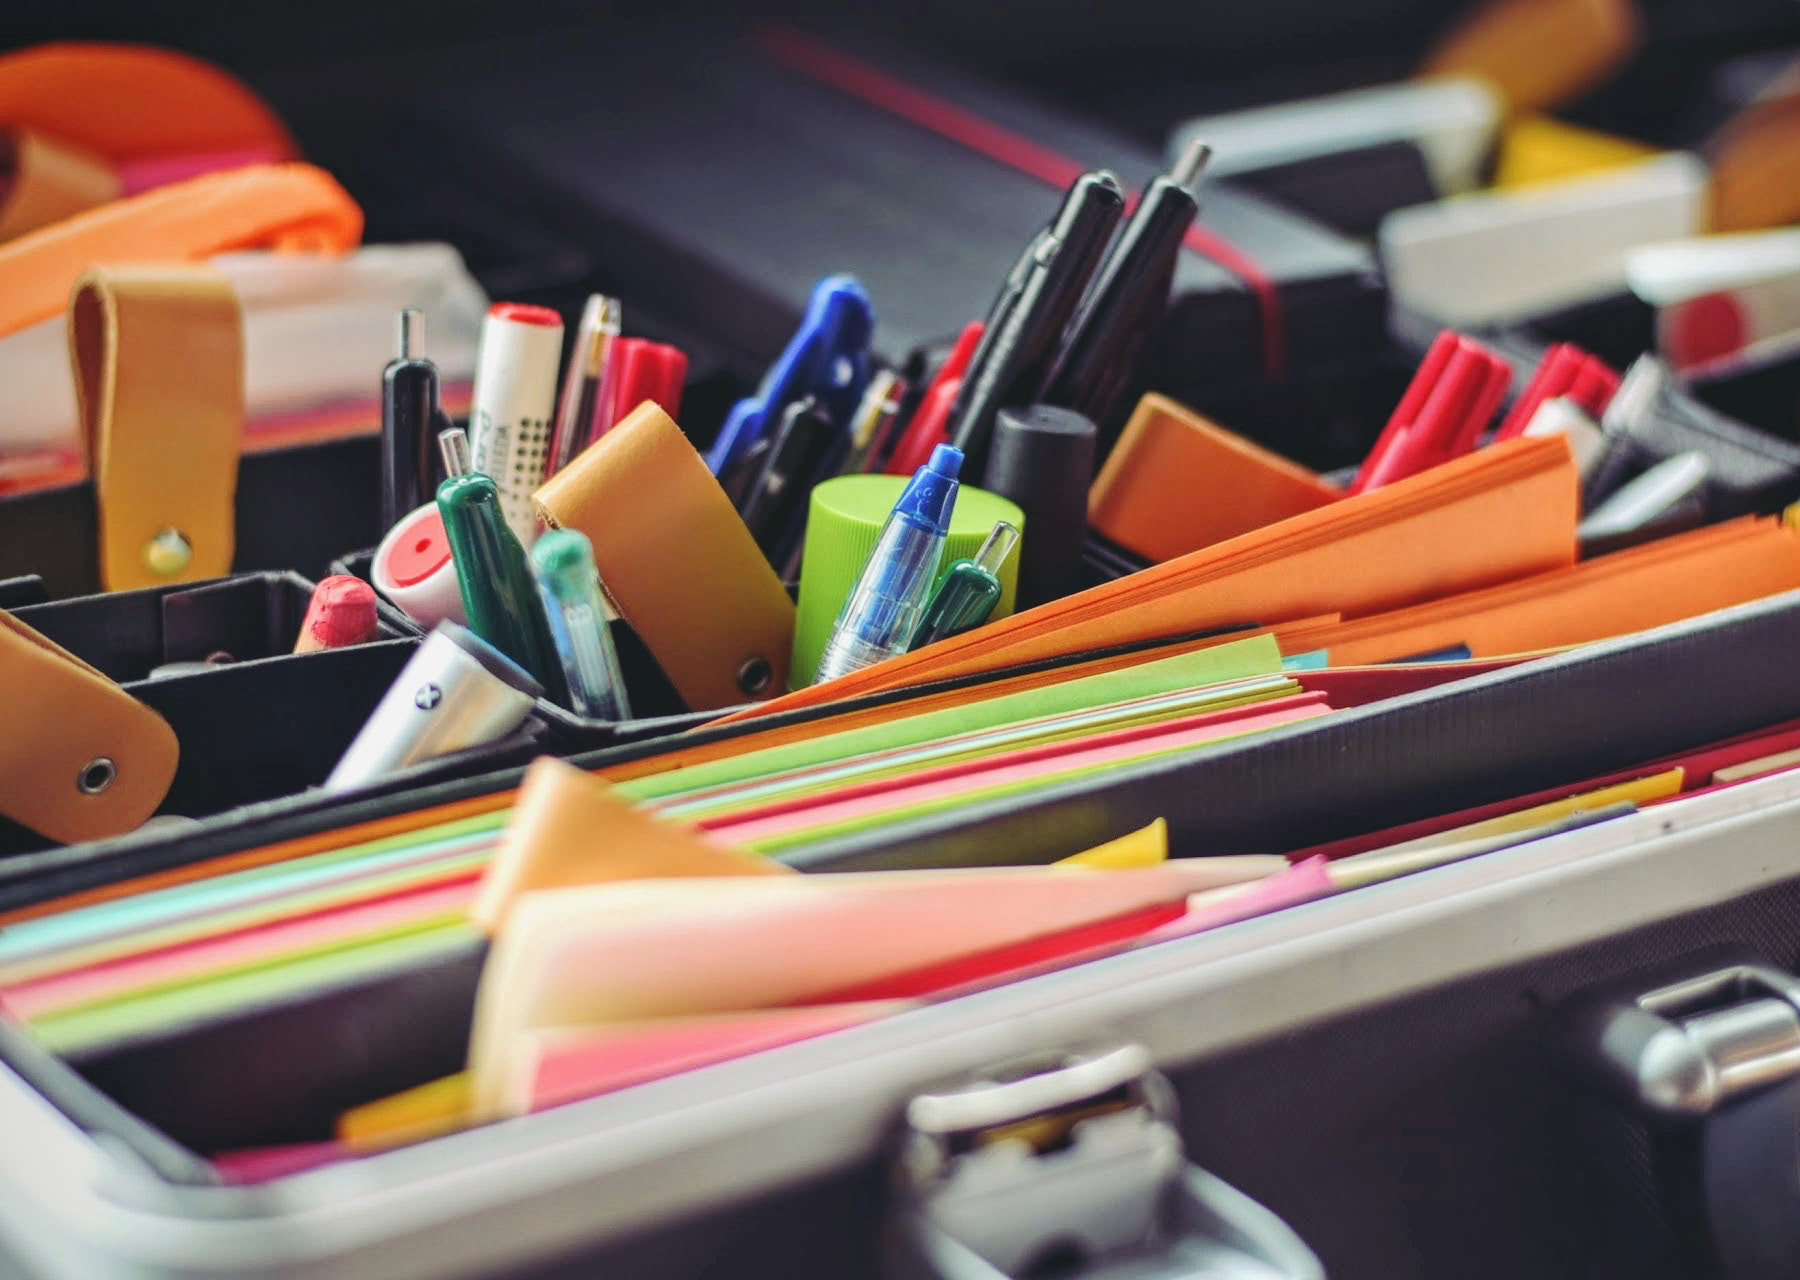 Tips for keeping your design work organised - image from pexels.com